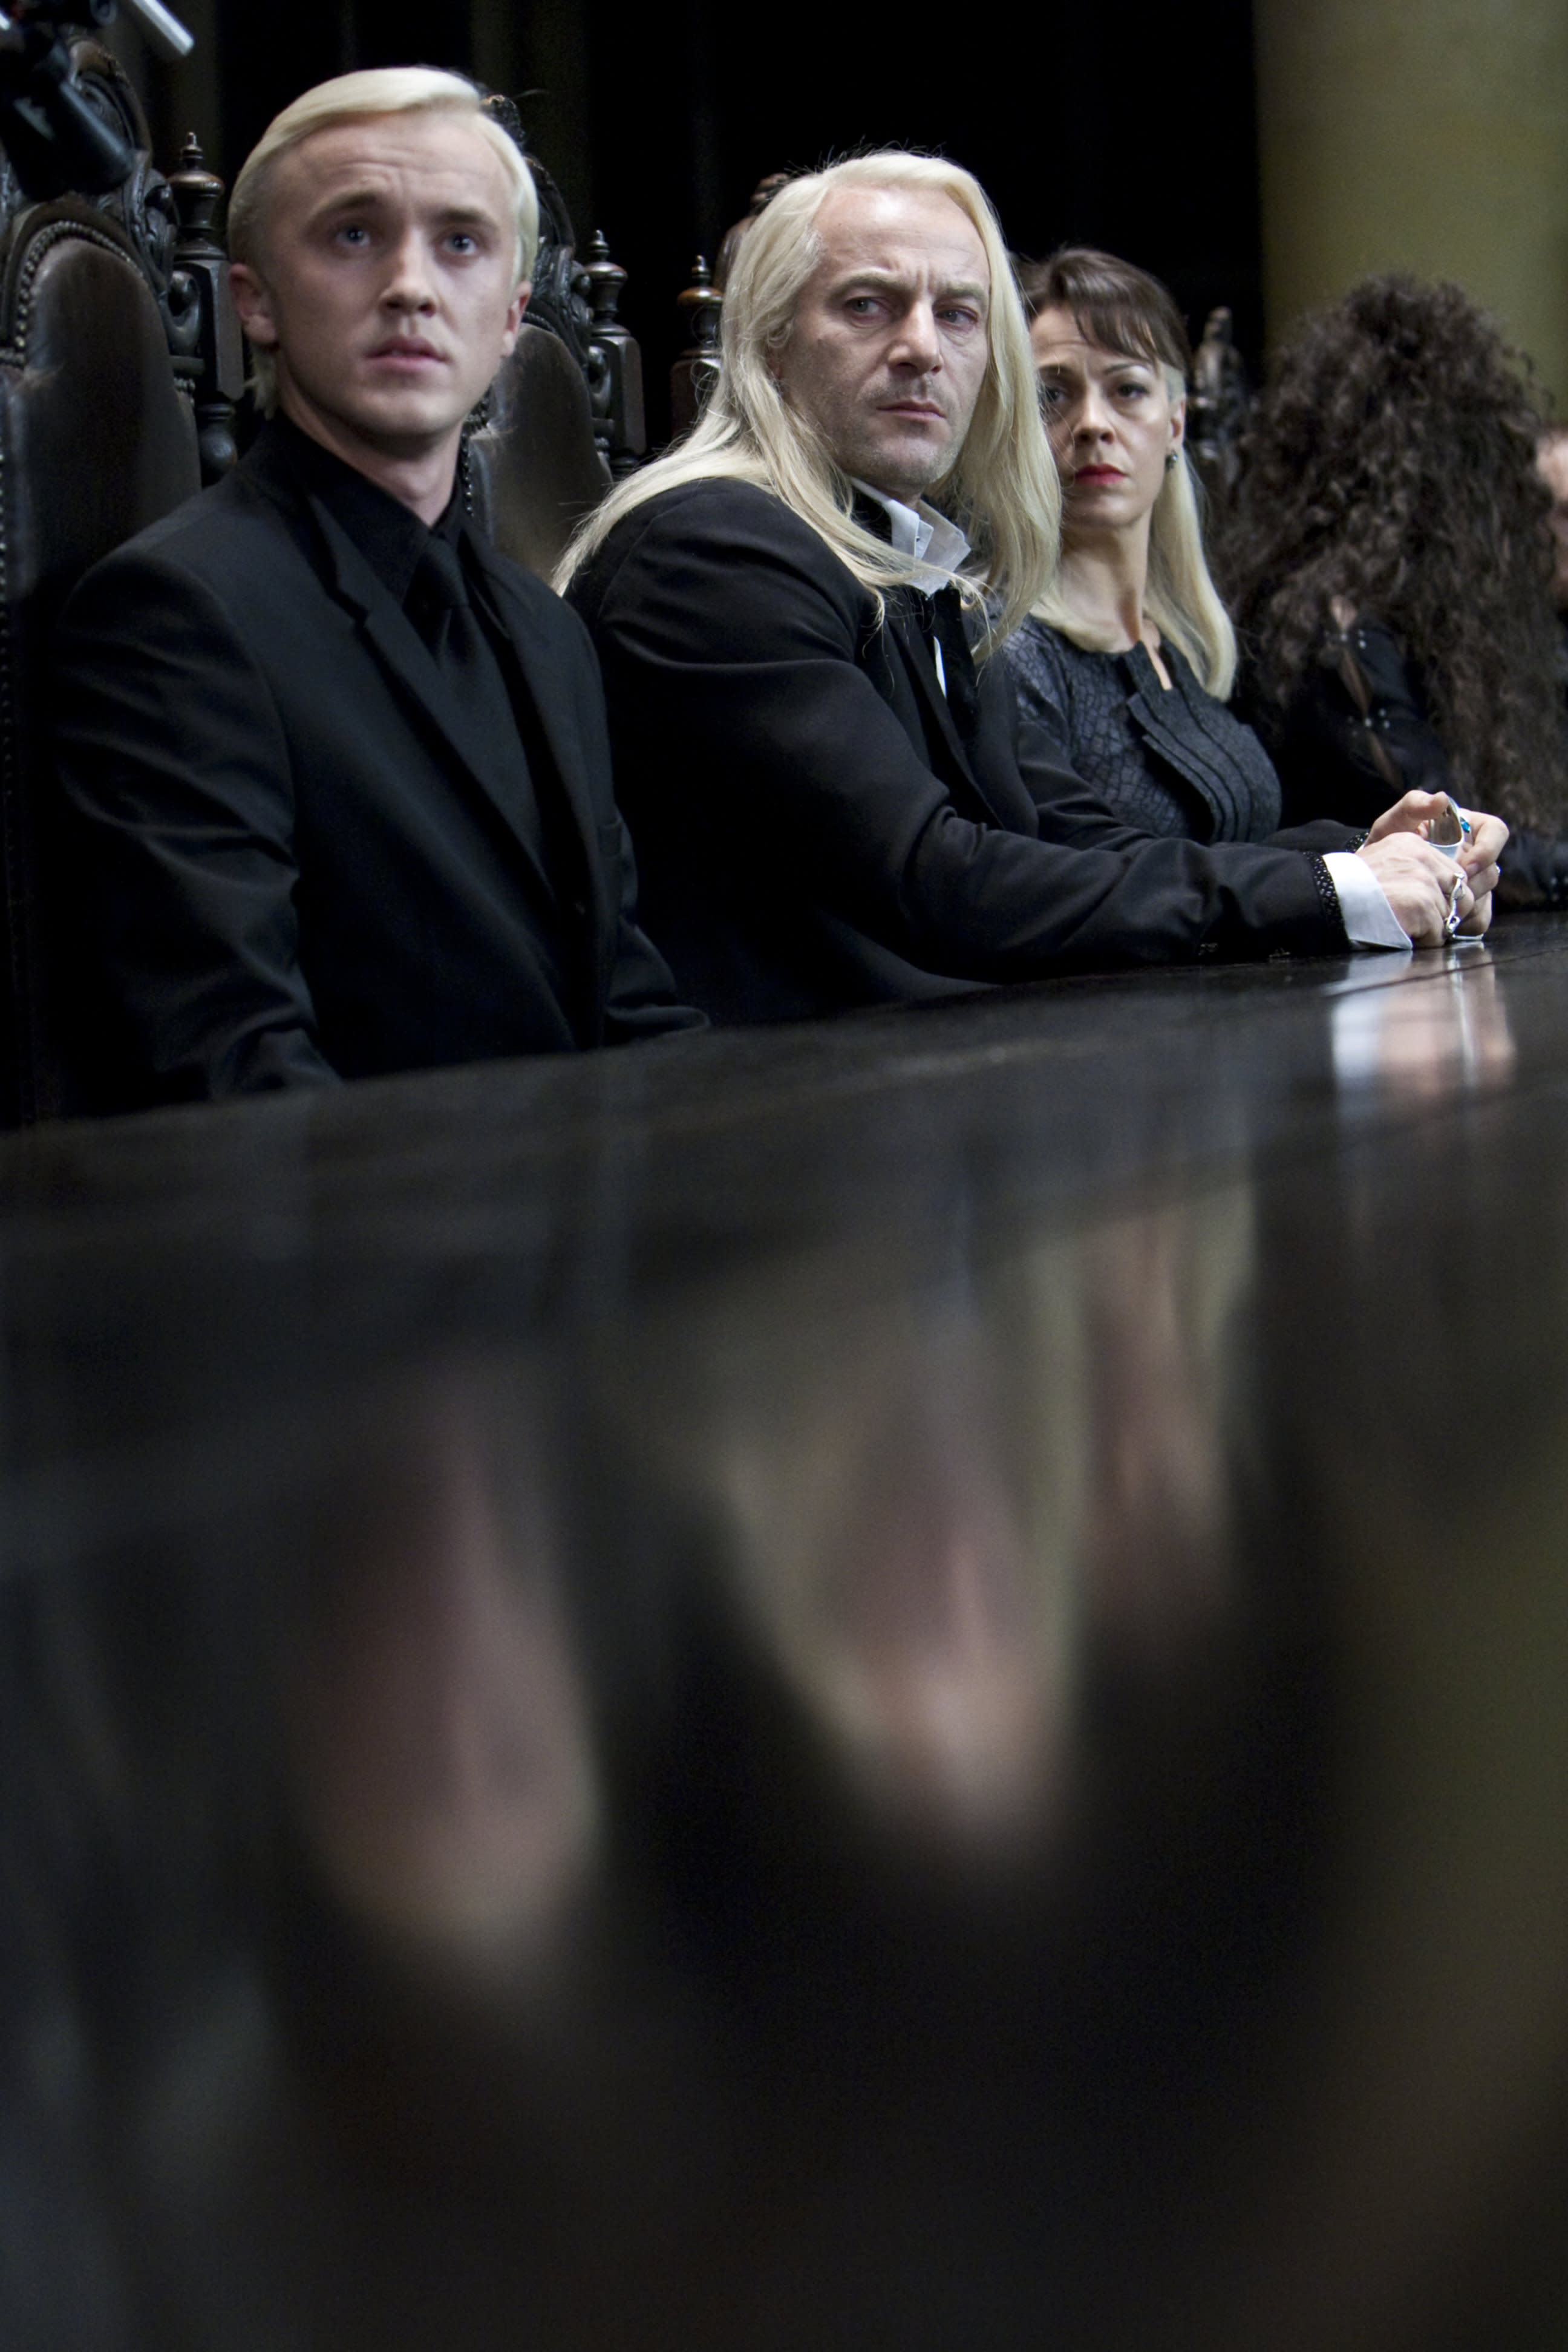 LuciusMalfoy WB F7 LuciusNarcissaDracoAtVoldemortsTable Still 080615 Port